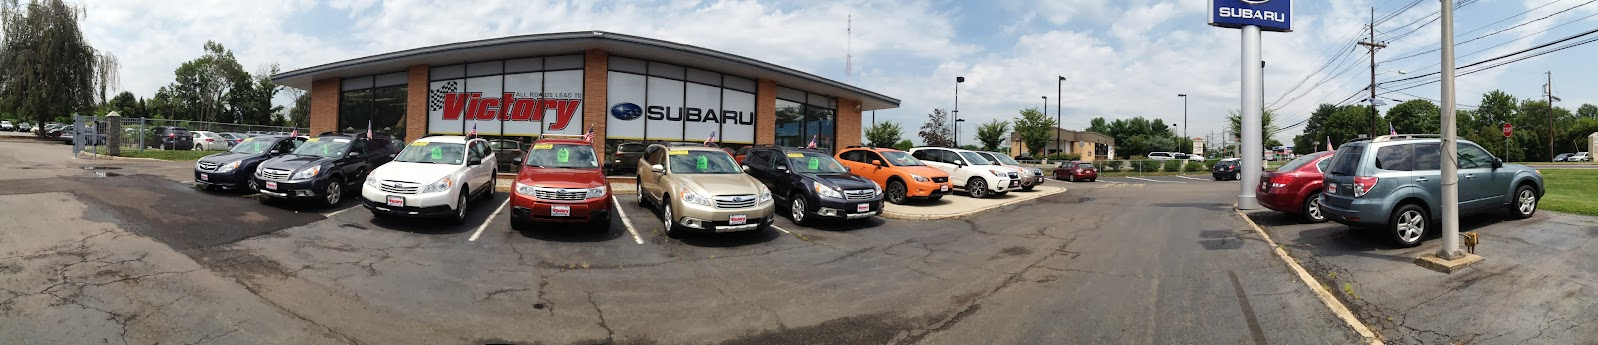 Subaru Dealership Photo